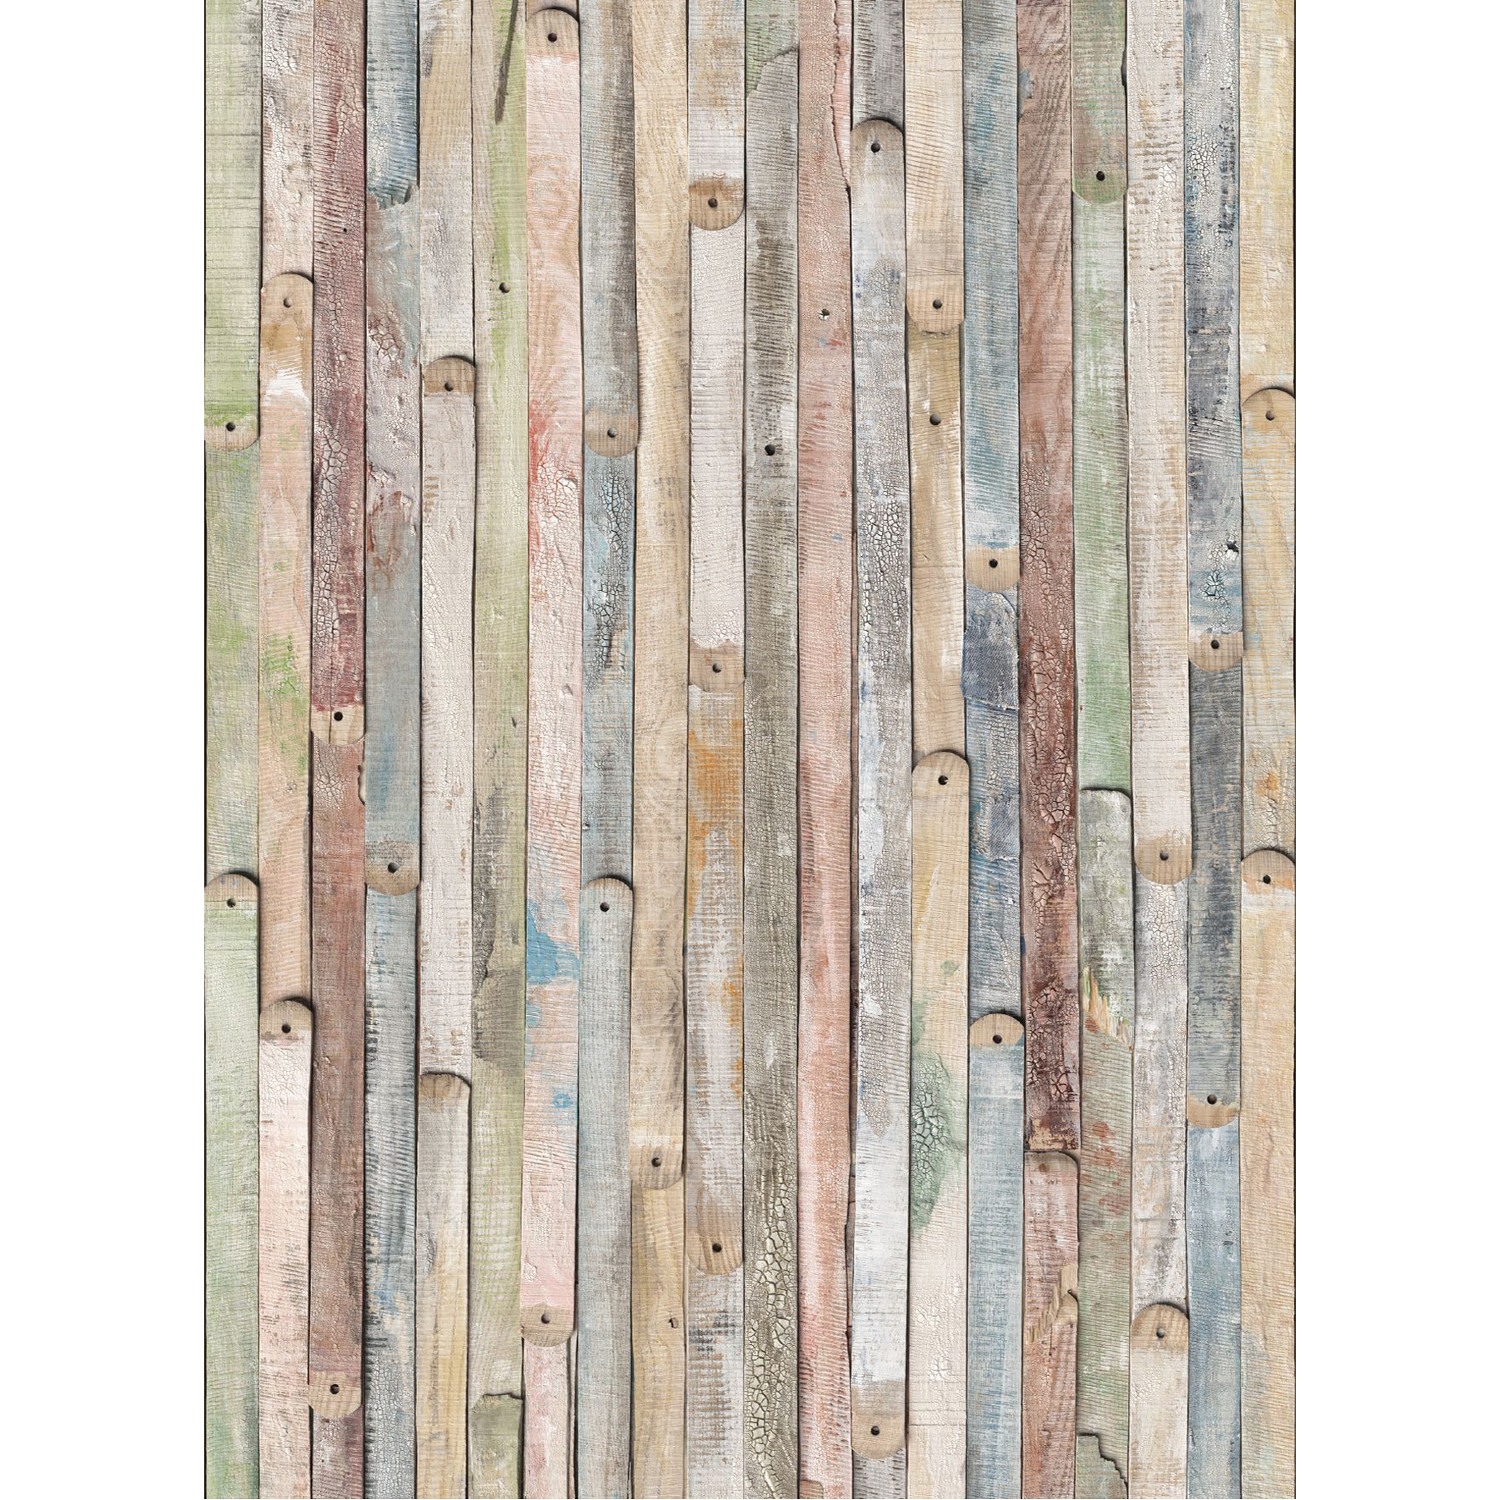 Vintage wood wall mural brewster home fashions touch for Brewster wallcovering wood panels mural